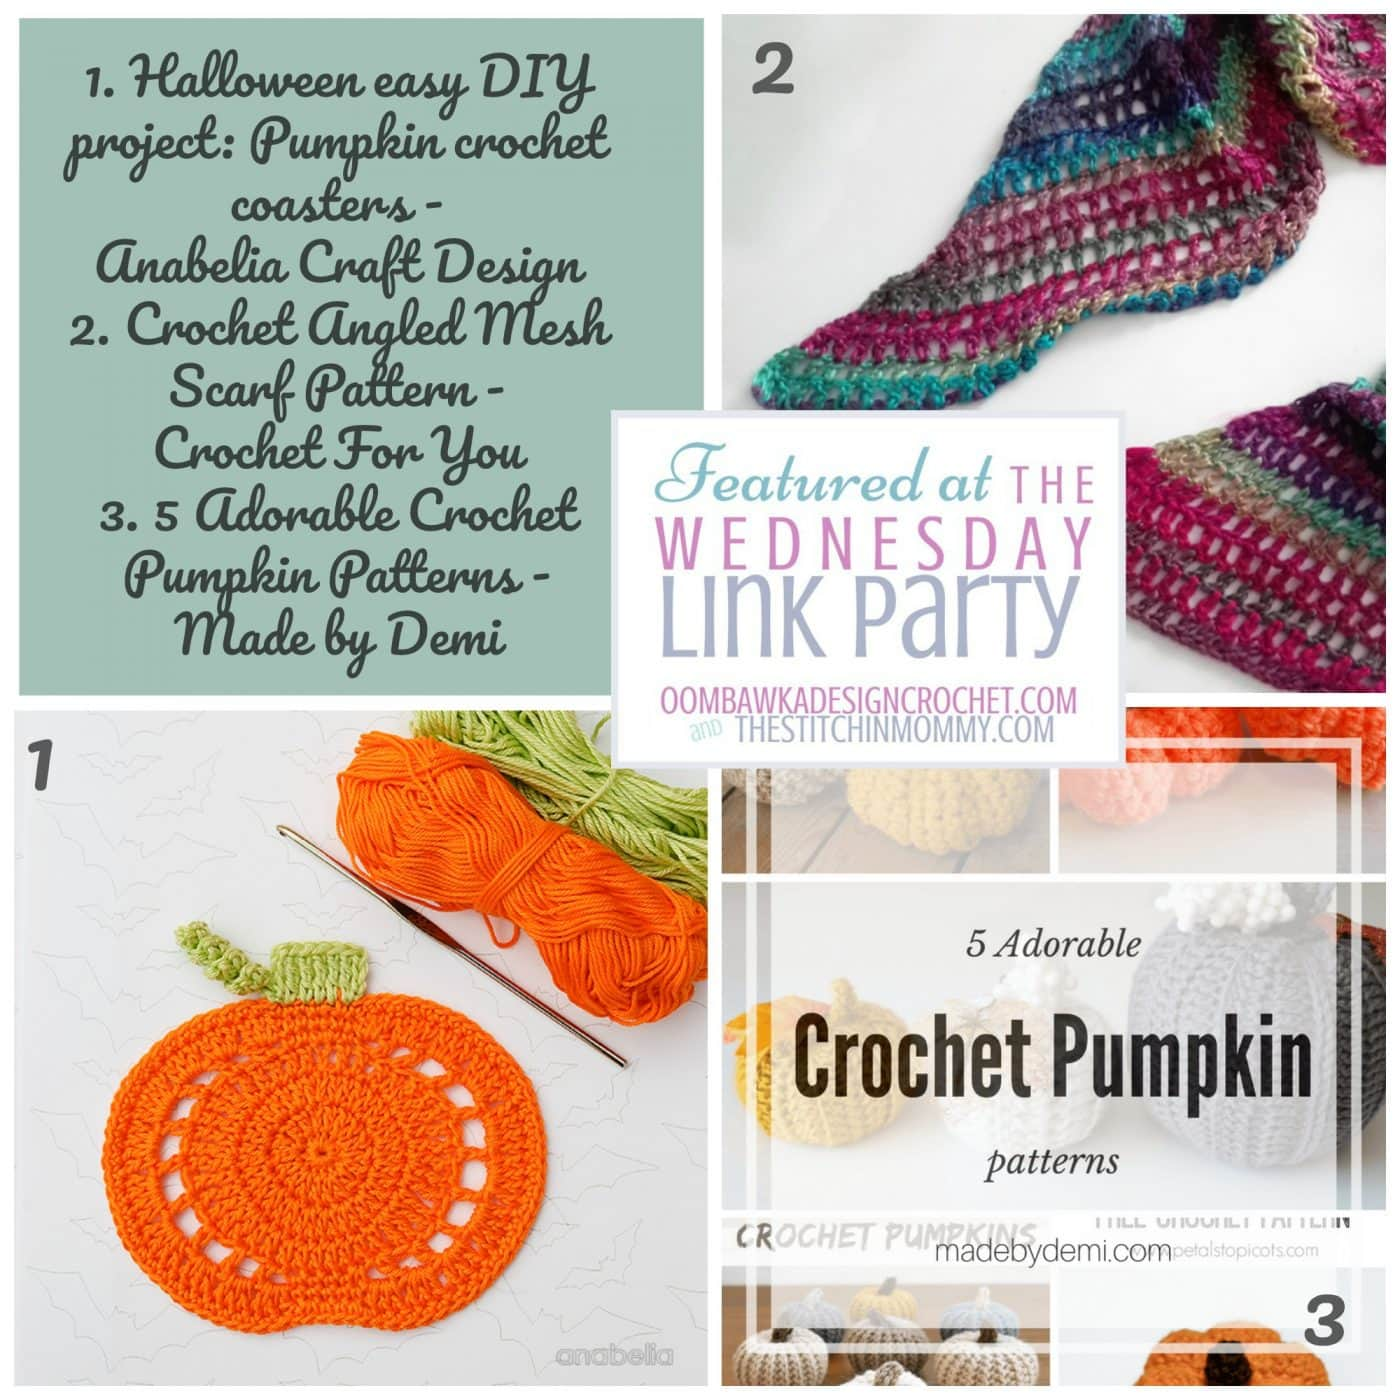 Check out Anabelia Craft Design's elegant crochet pumpkin coasters, Crochet For You's pretty and lightweight Mesh Scarf or pick your favorite from the five pumpkin projects showcased in a collection curated by Made by Demi.